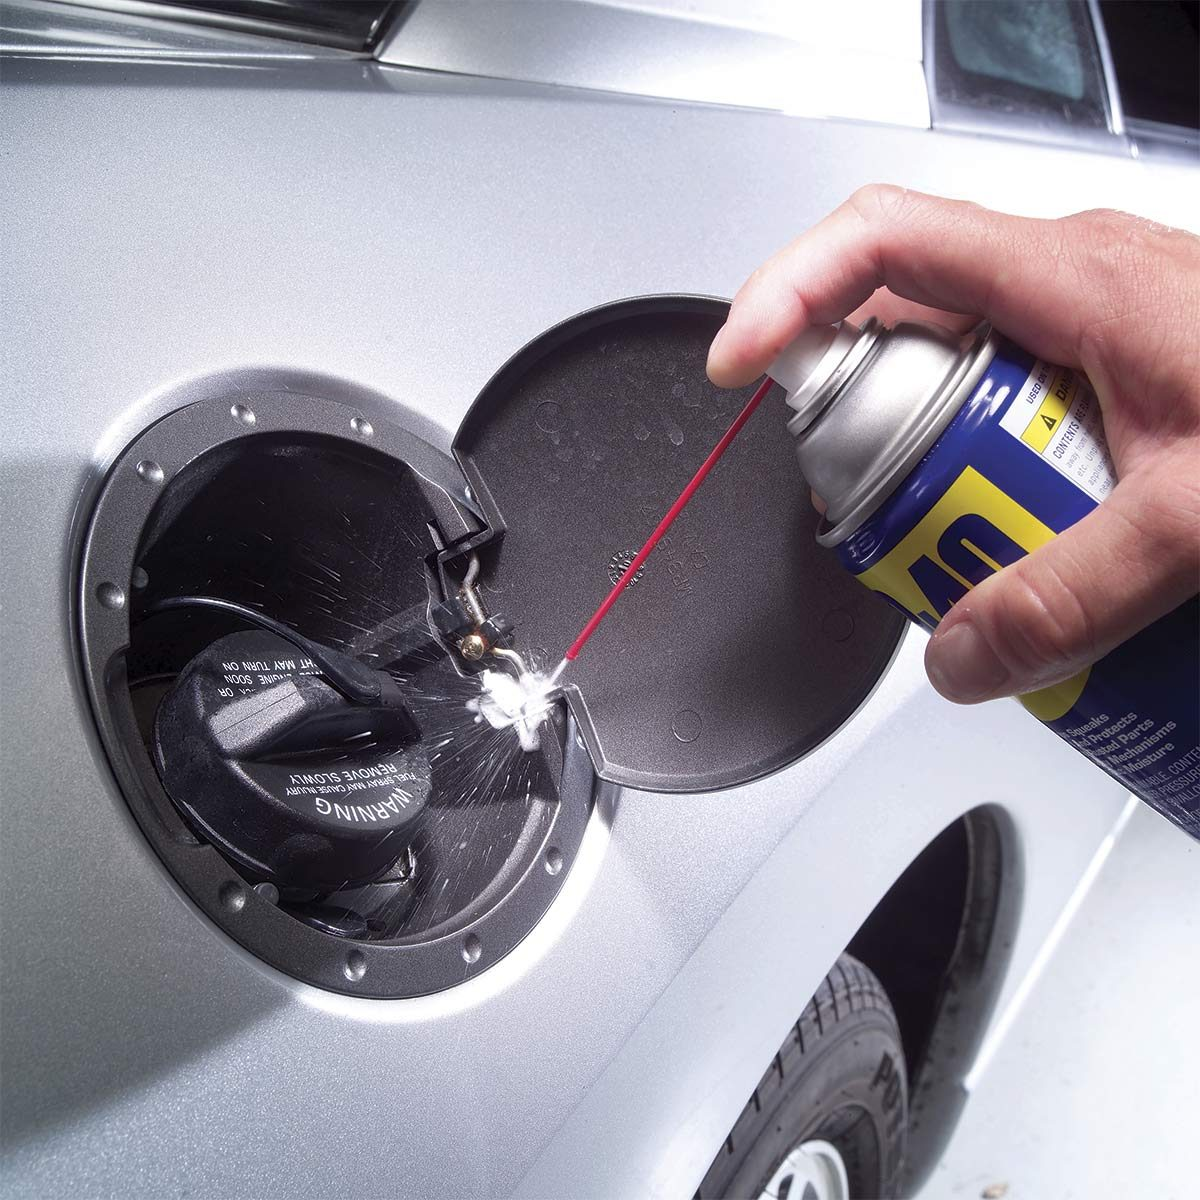 WD 40 Uses on Cars: Lubricate the Gas Tank Lid